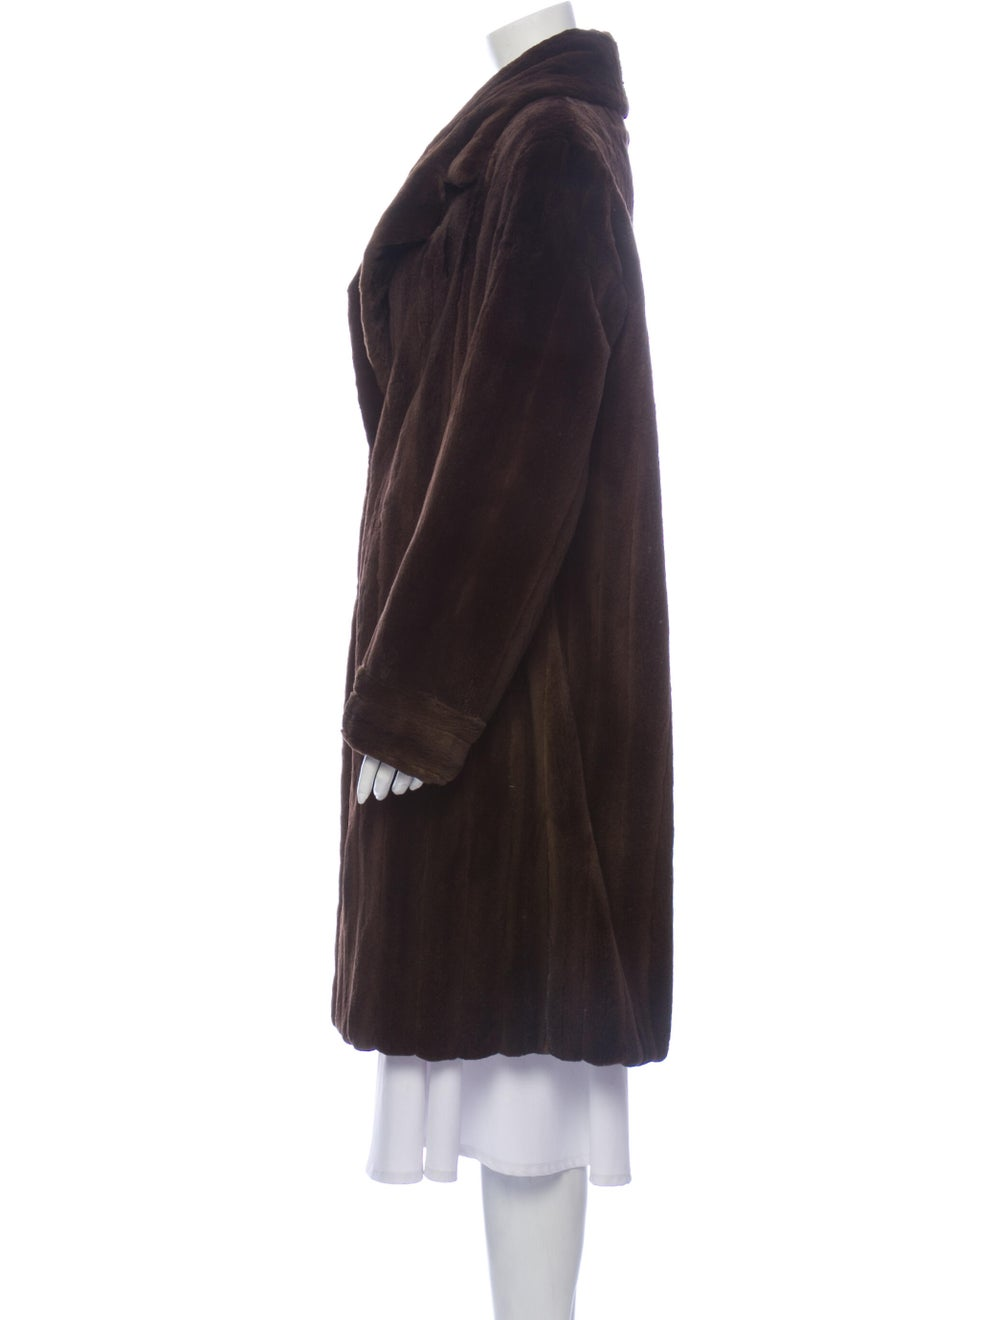 Fur Fur Coat Brown - image 2